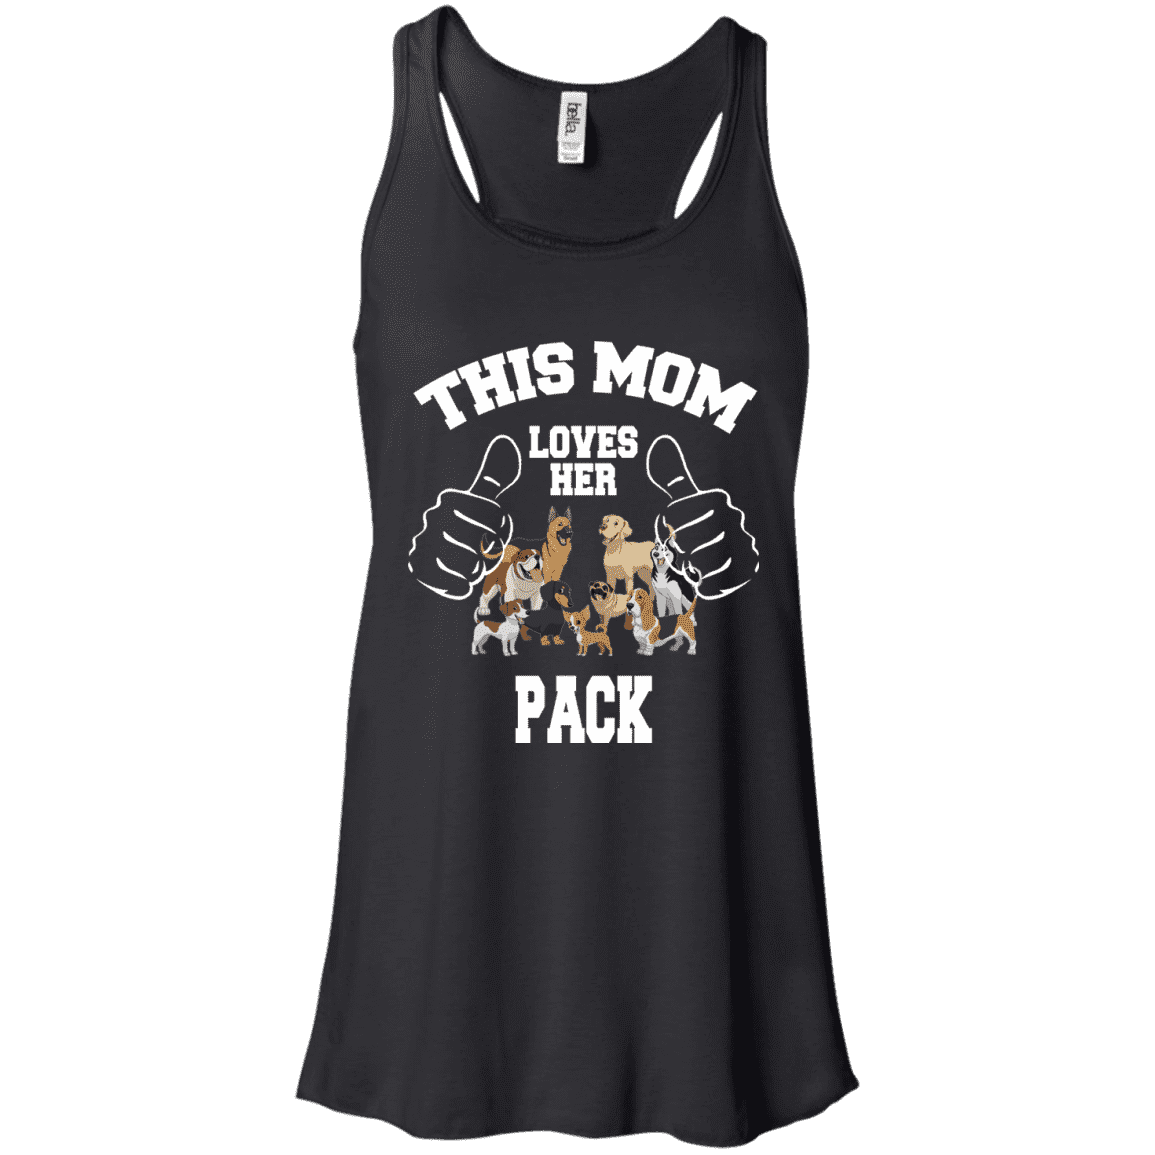 This Mom Loves Her Pack Ladies Tee - STUDIO 11 COUTURE